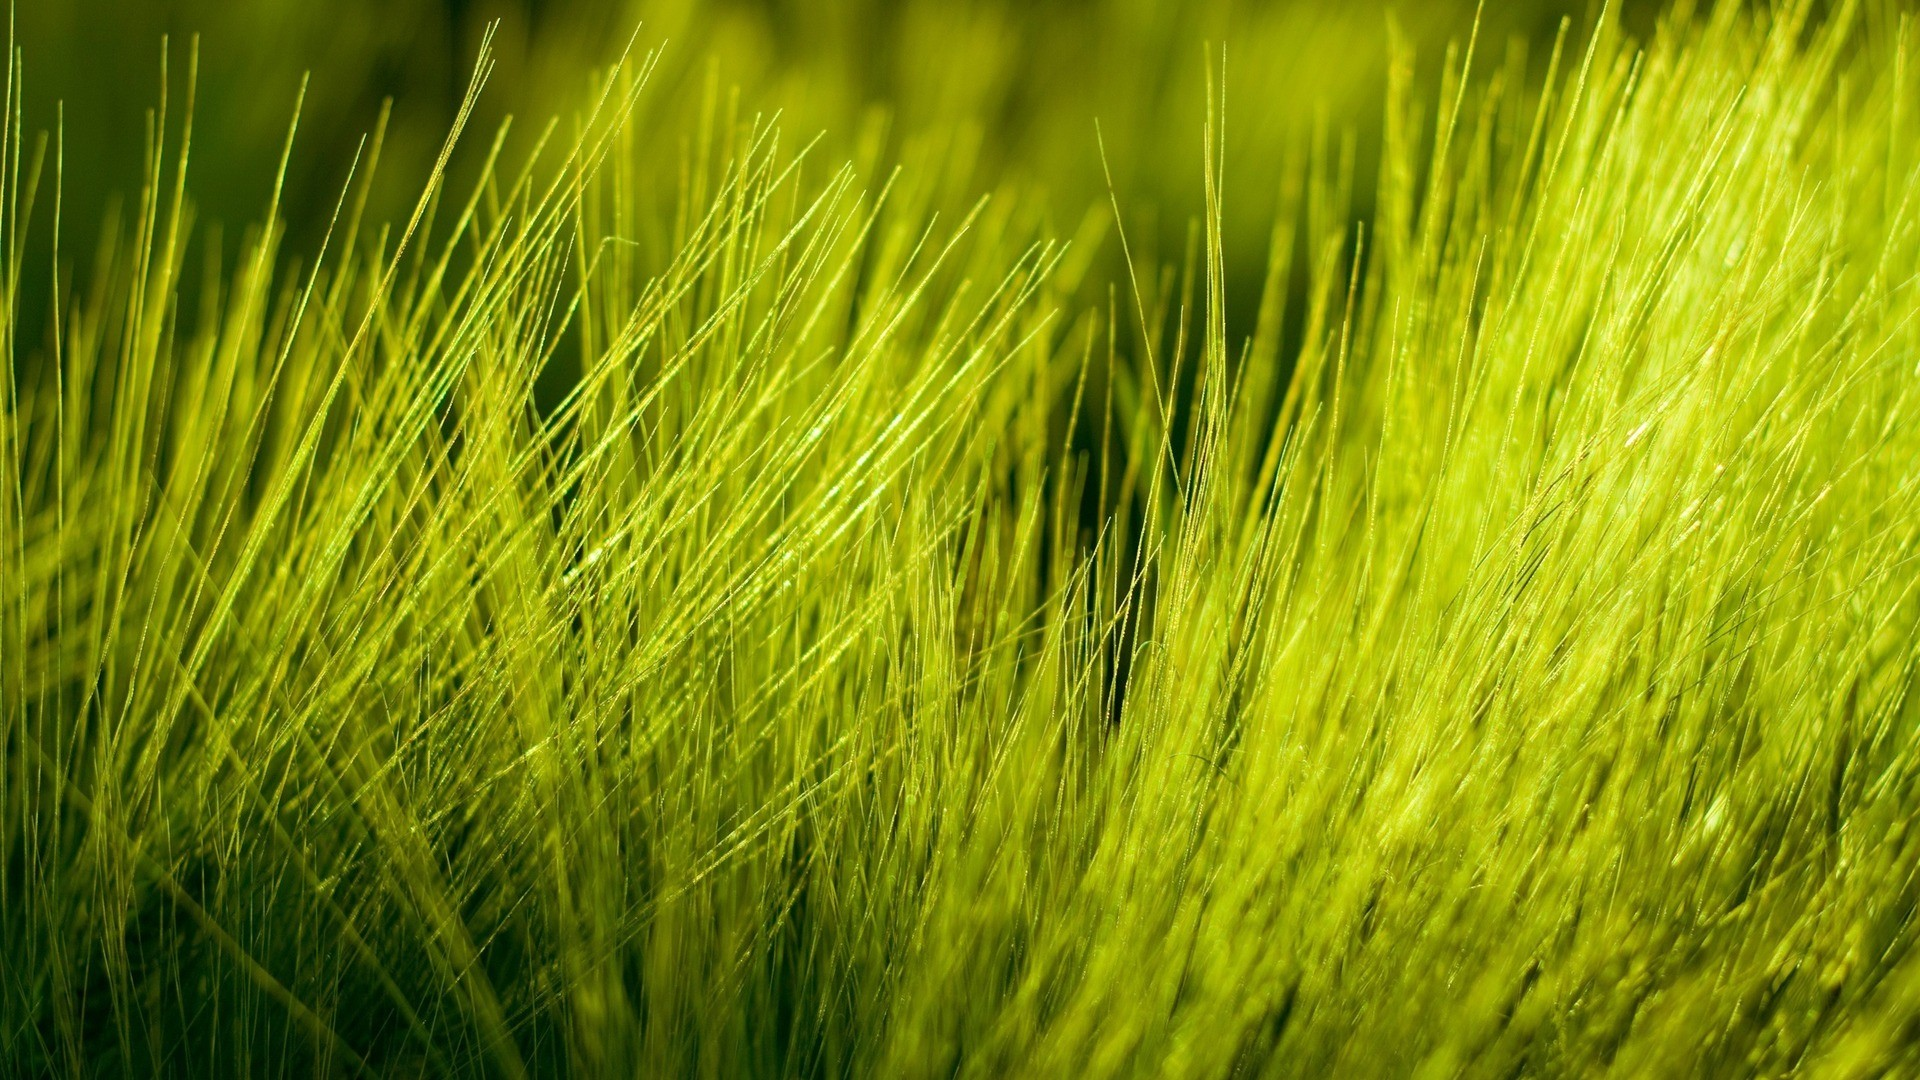 General 1920x1080 nature grass green